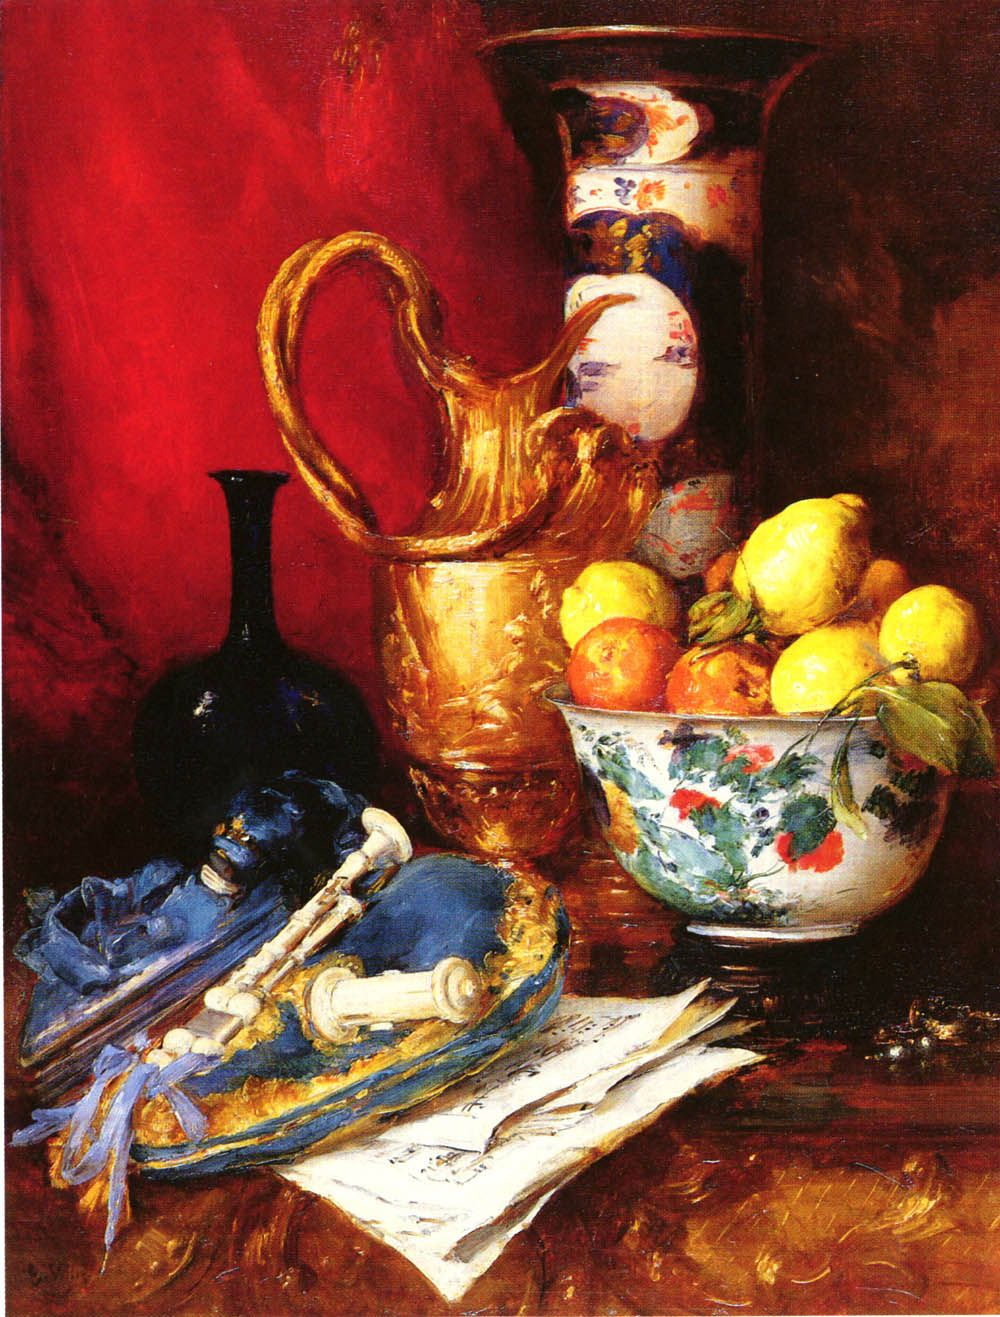 A Still Life with a Bowl of Fruit by Antoine Vollon